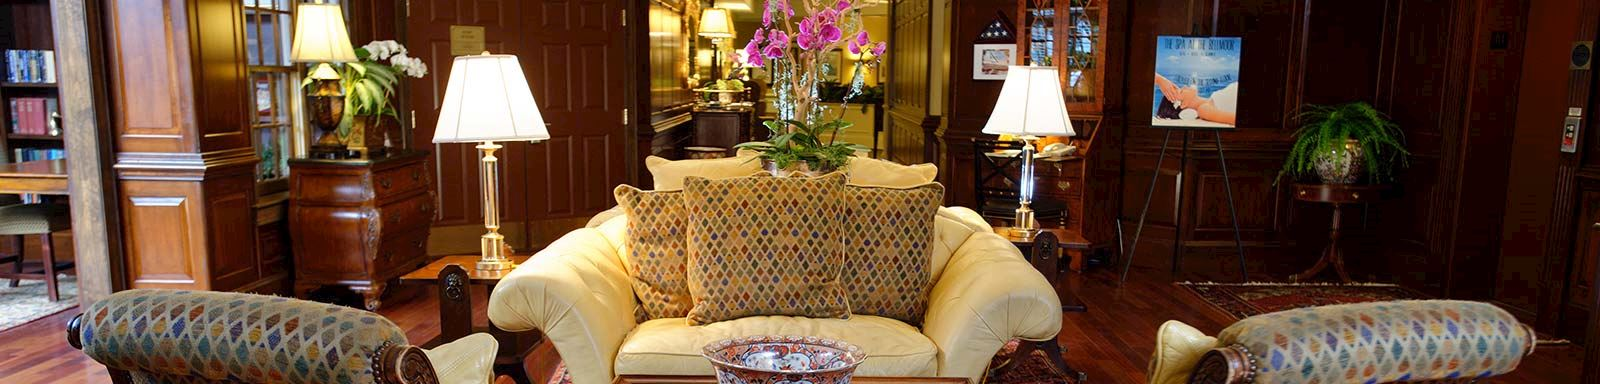 The Bellmoor Inn and Spa Hotel, Delaware Early Bird Special